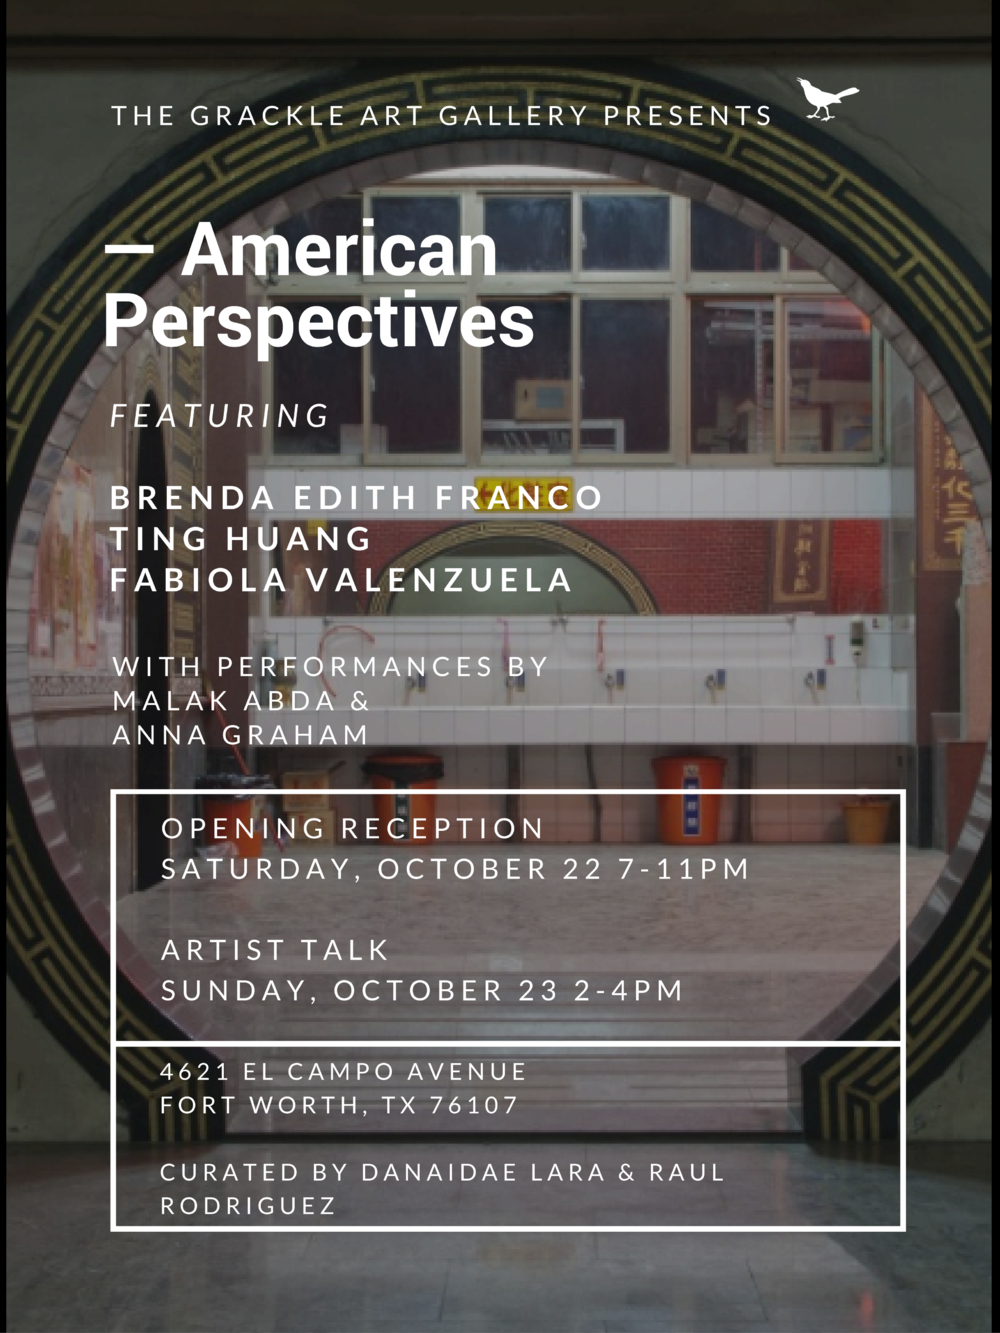 -American Perspectives curated by Raul Rodriguez and Dee Lara at the Grackle Art Gallery